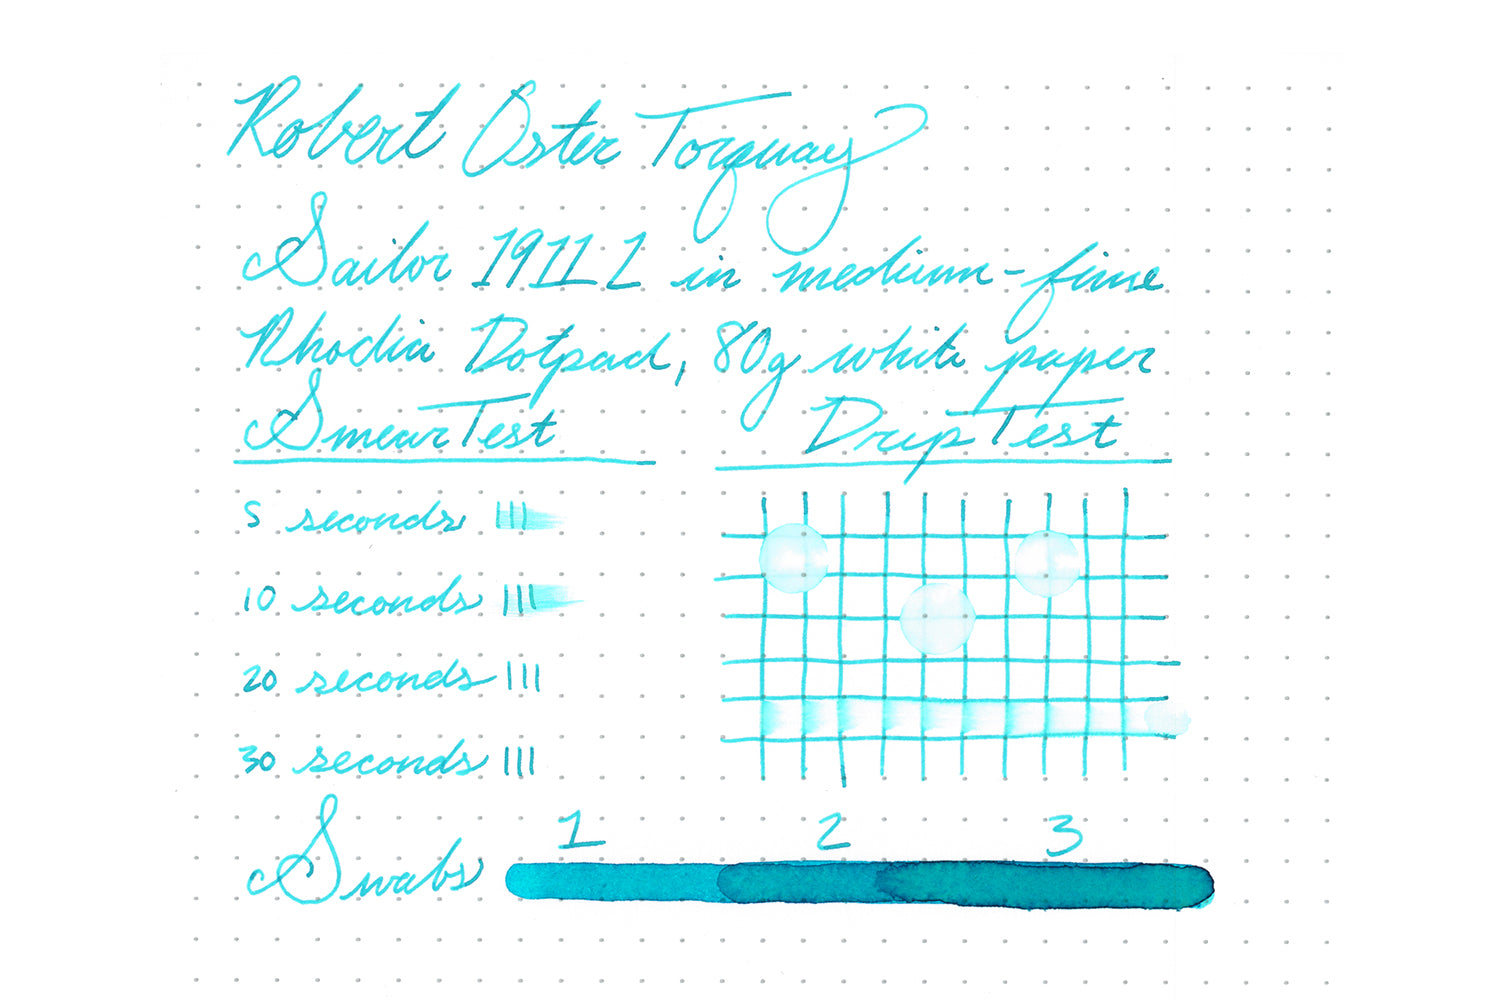 Robert Oster Torquay - Ink Sample